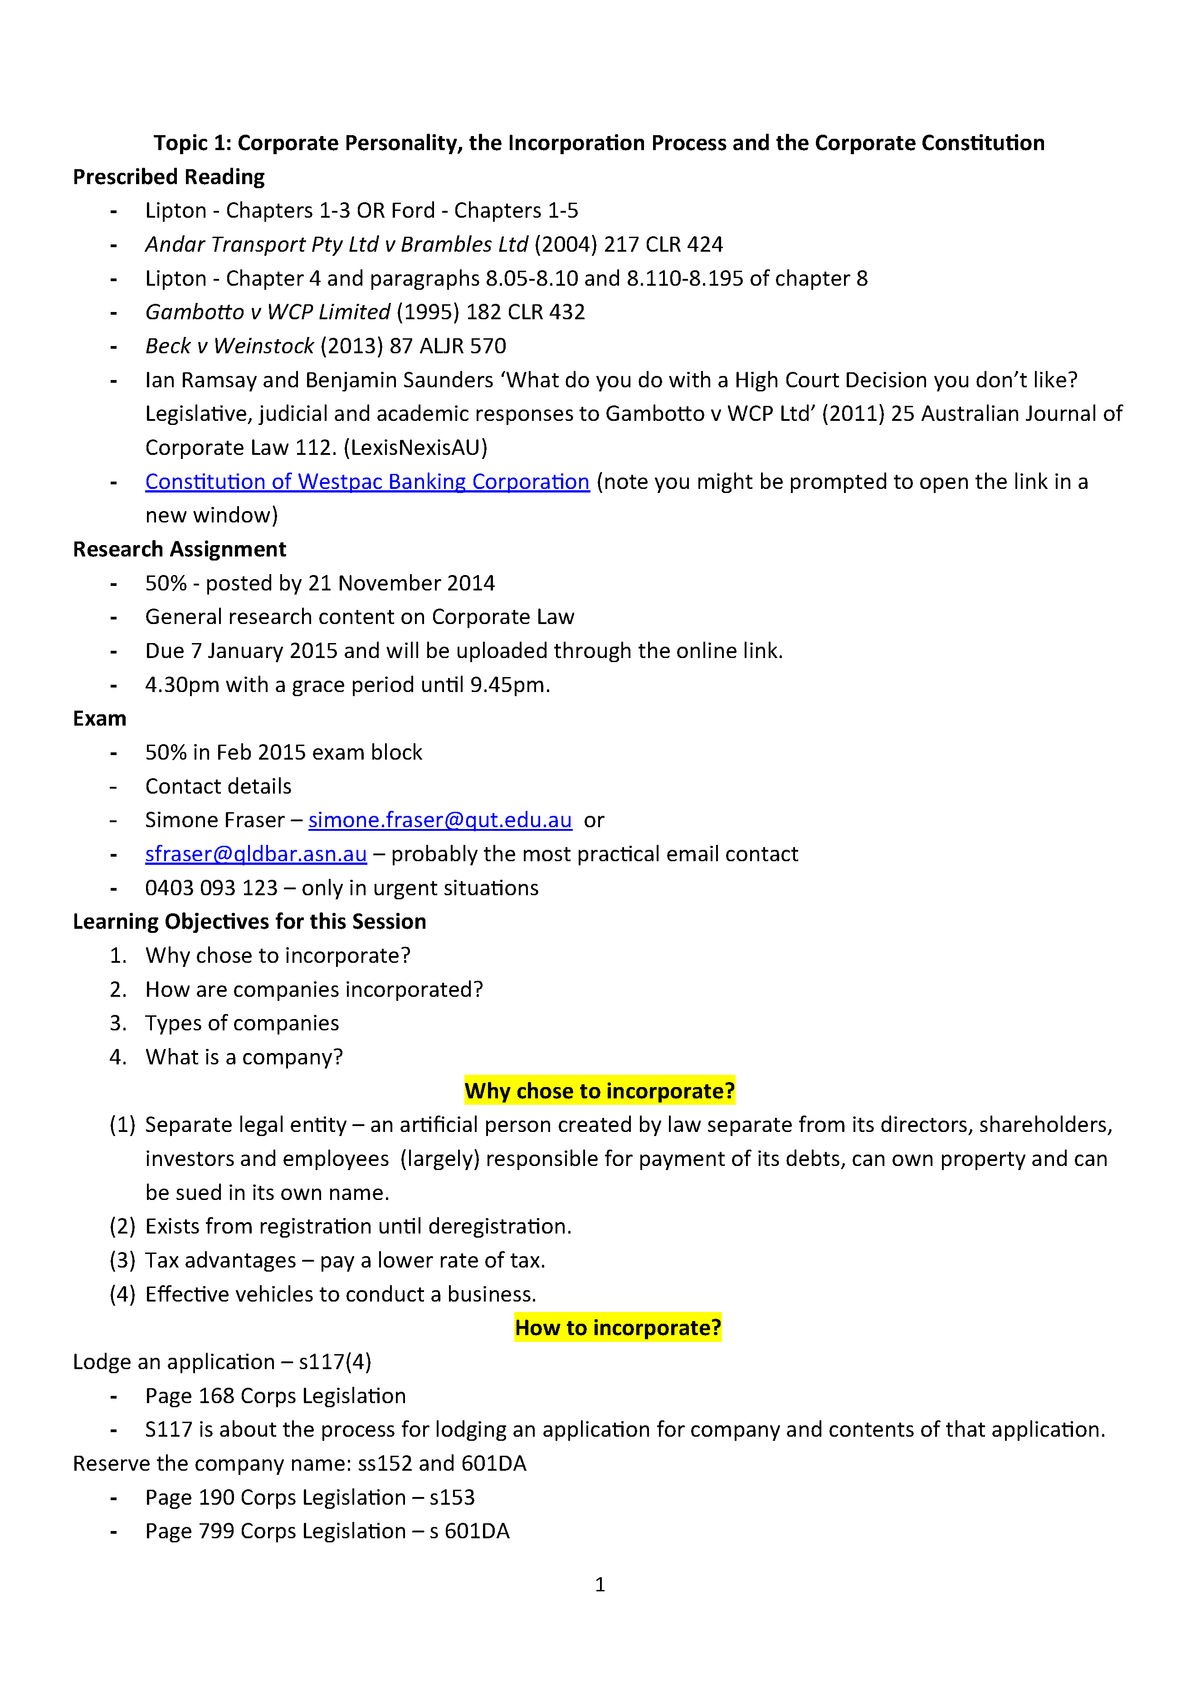 Final Corps Notes Sess 1 - 3 - LWB334 Corporate Law - QUT